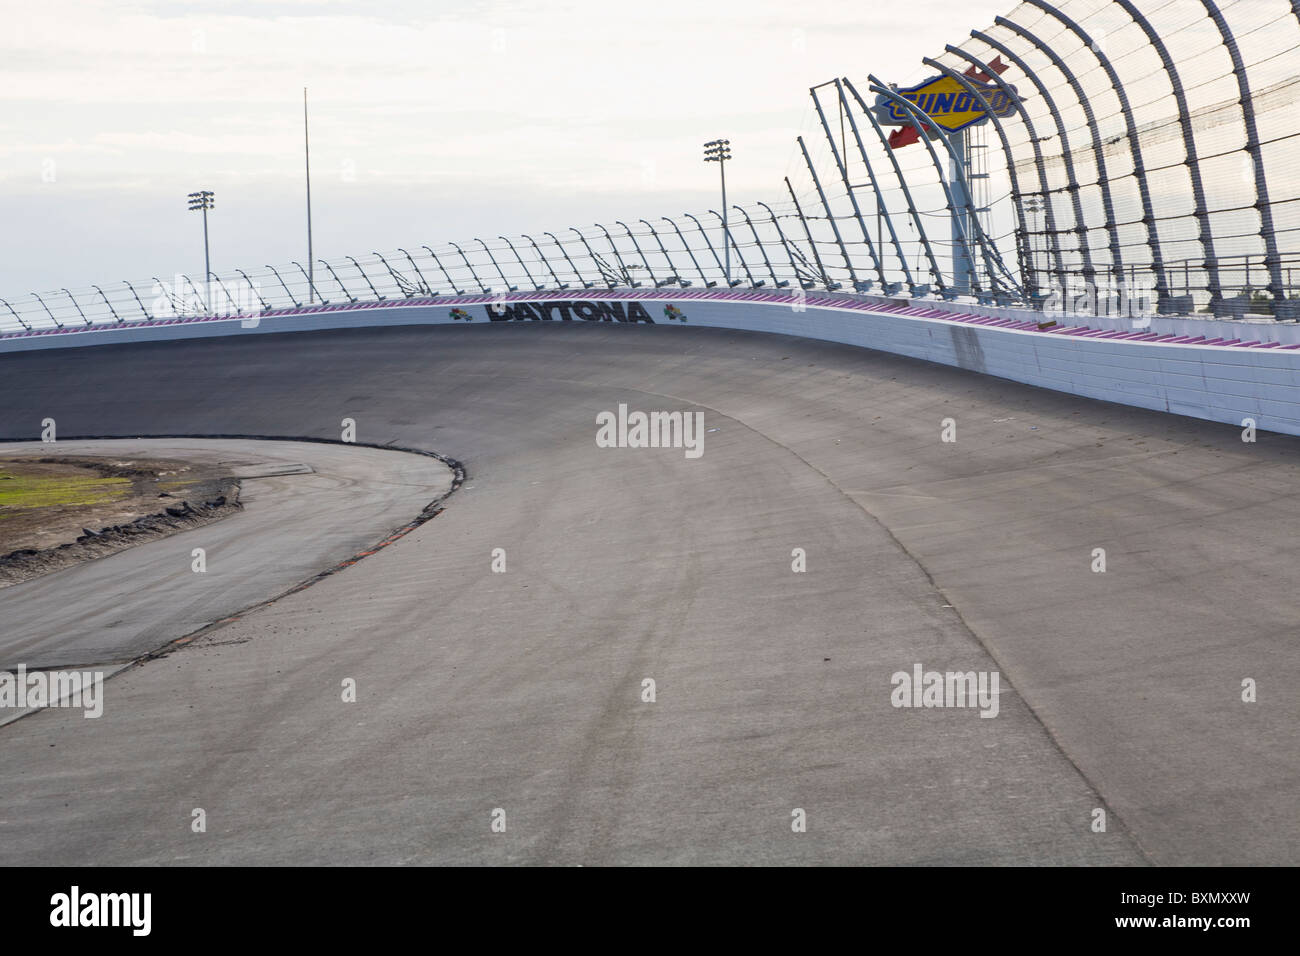 Leeres Bankkonto gehabten Rennstrecke auf dem Daytona International Speedway in Daytona Beach, Florida Stockbild